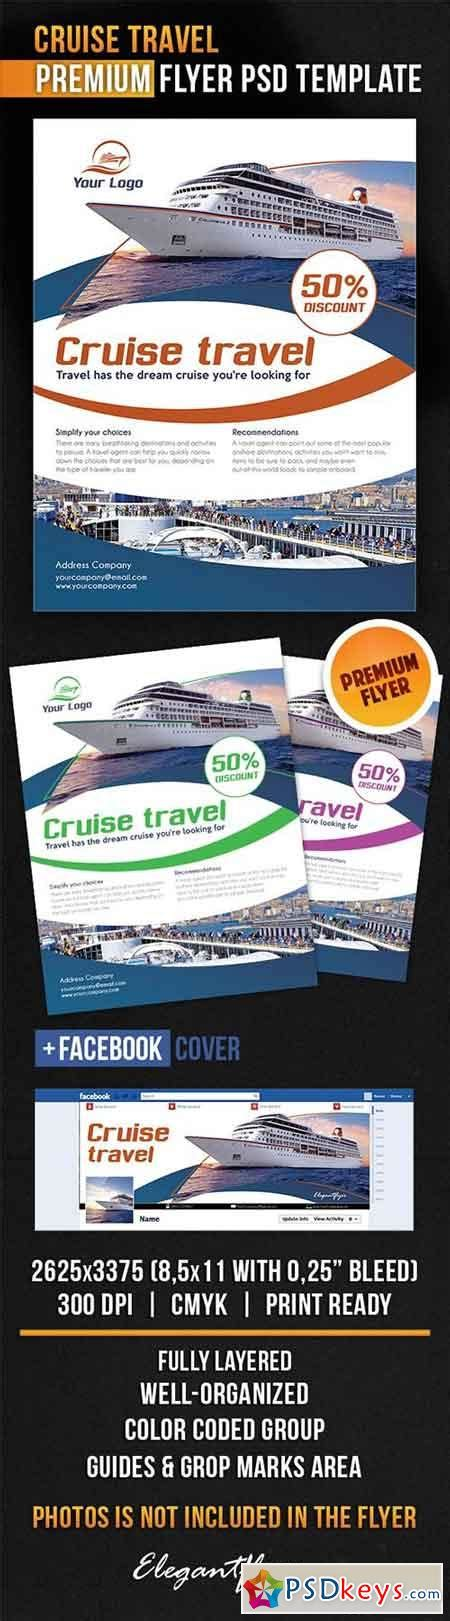 cruise travel flyer psd template facebook cover 187 free